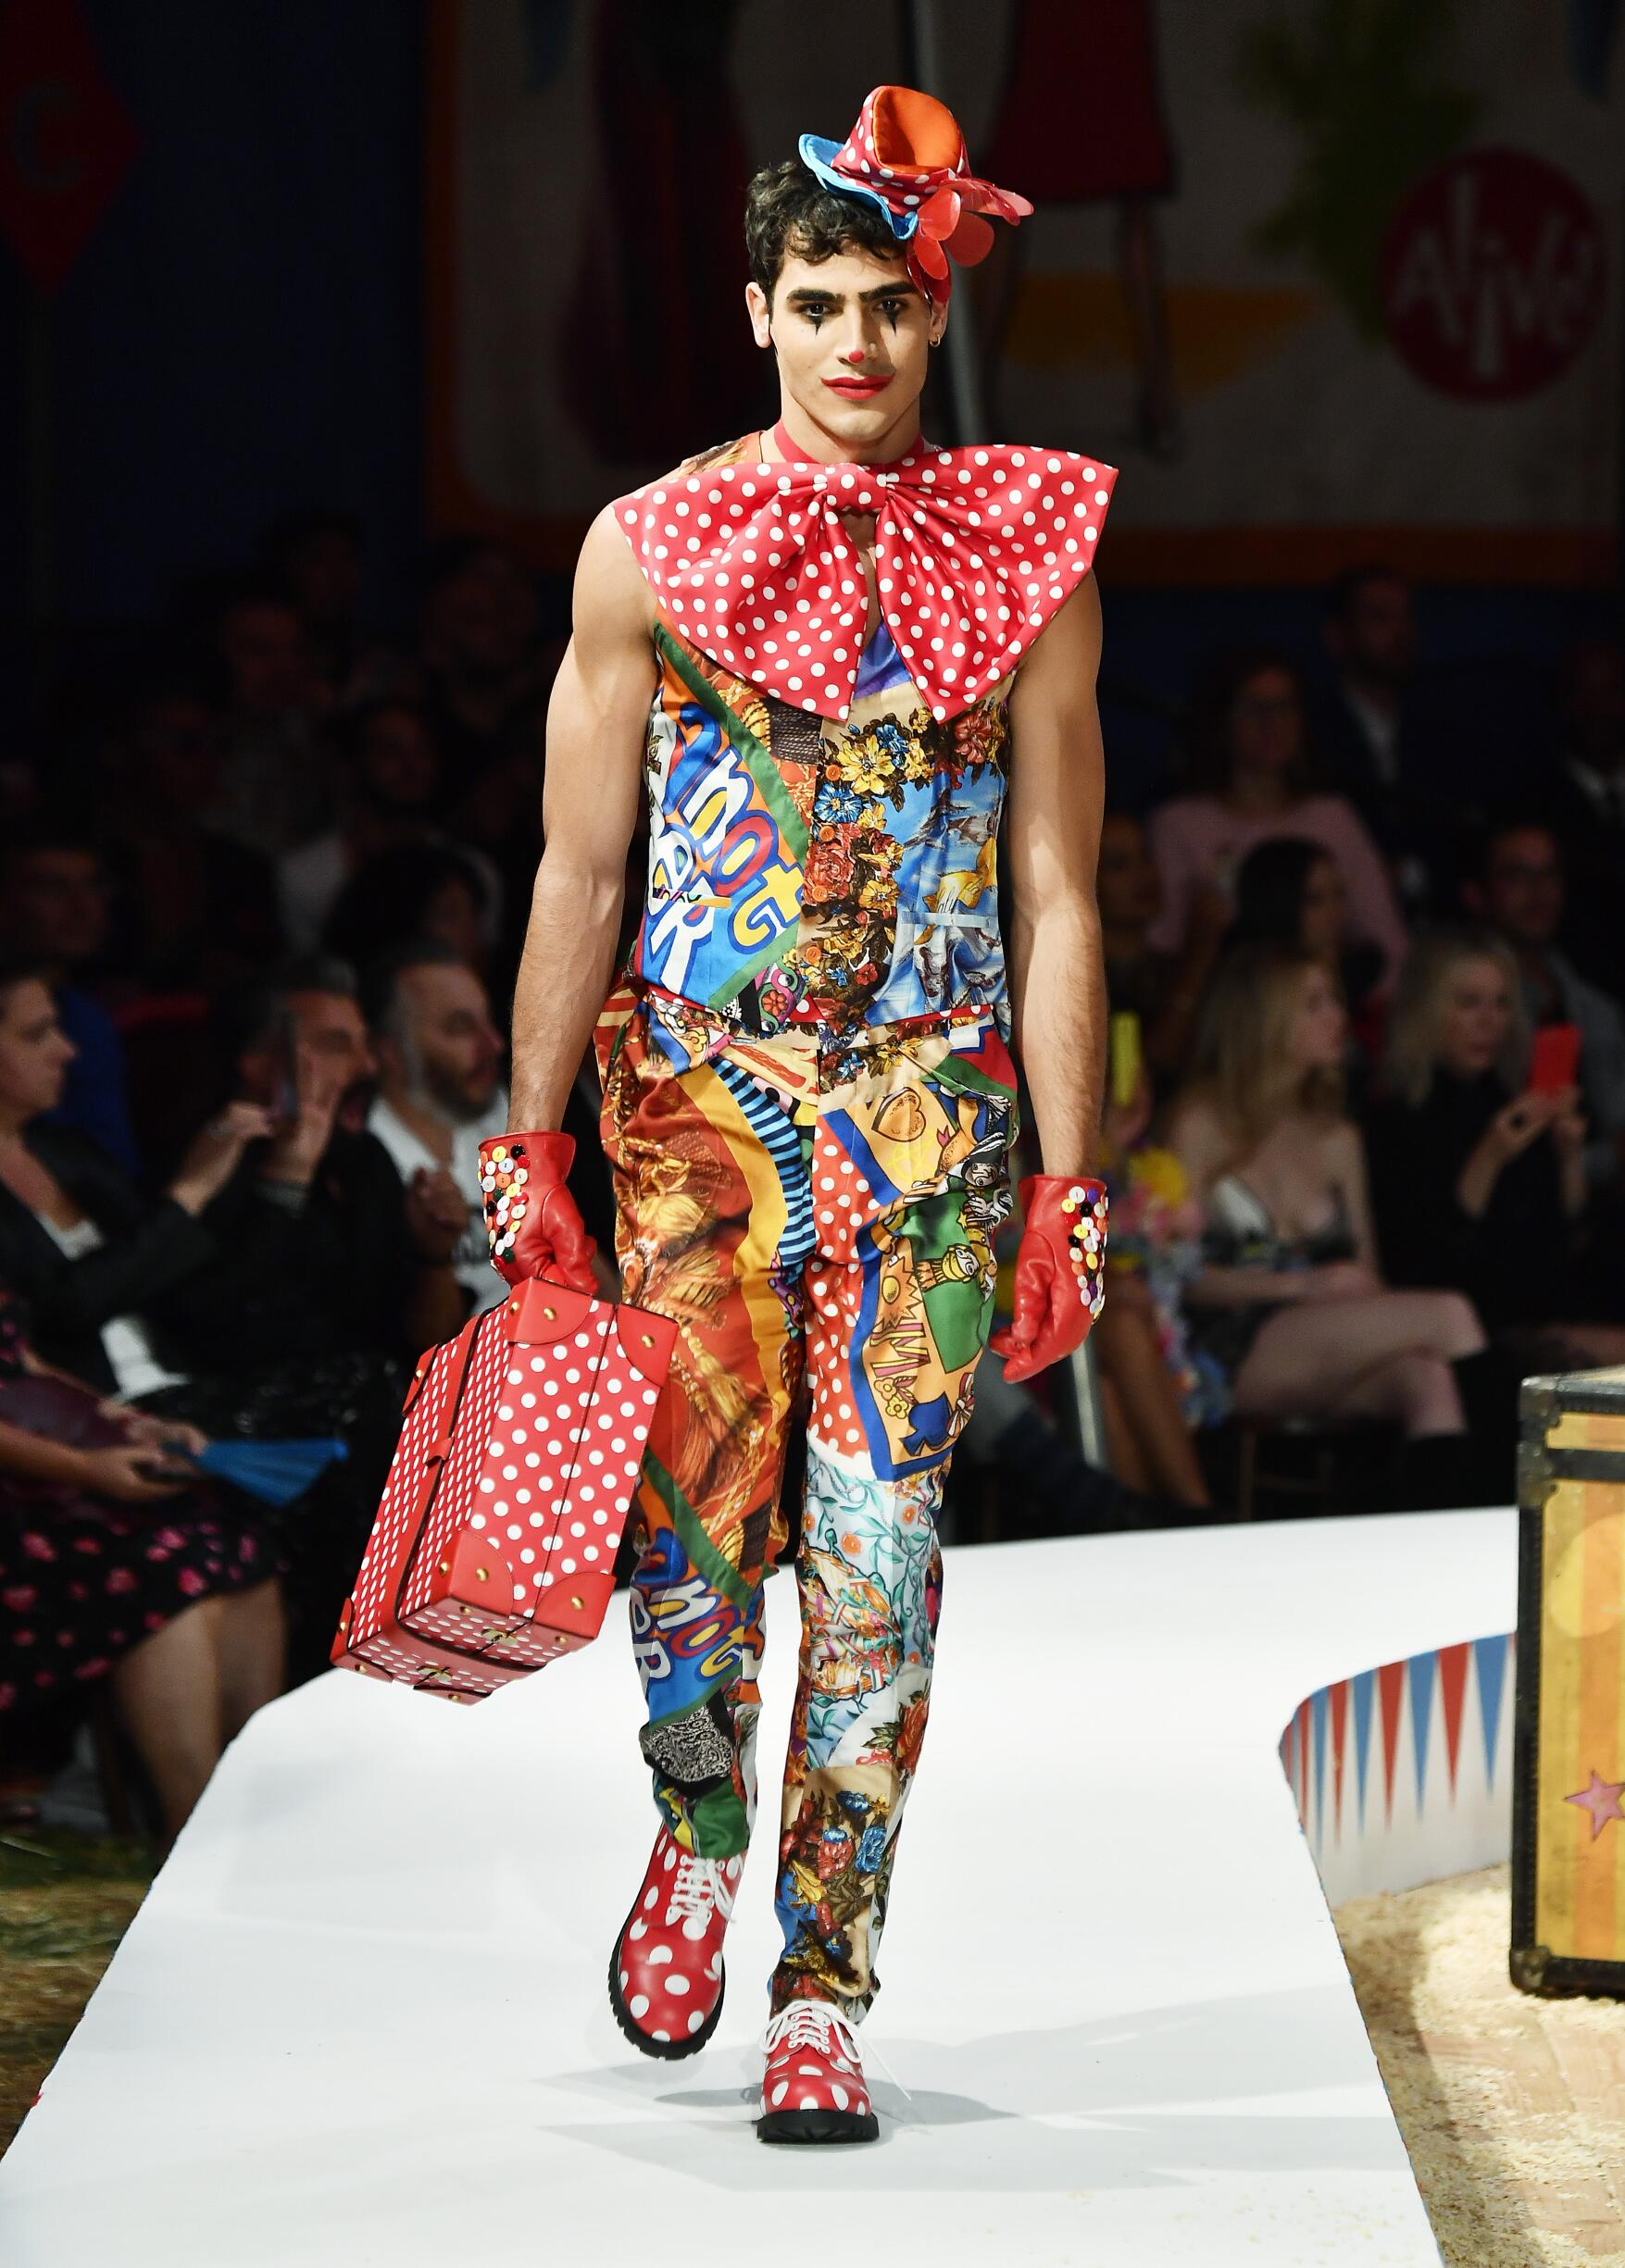 Moschino Spring Summer 2019 Menswear and Women's Resort Collection Look 64 Los Angeles